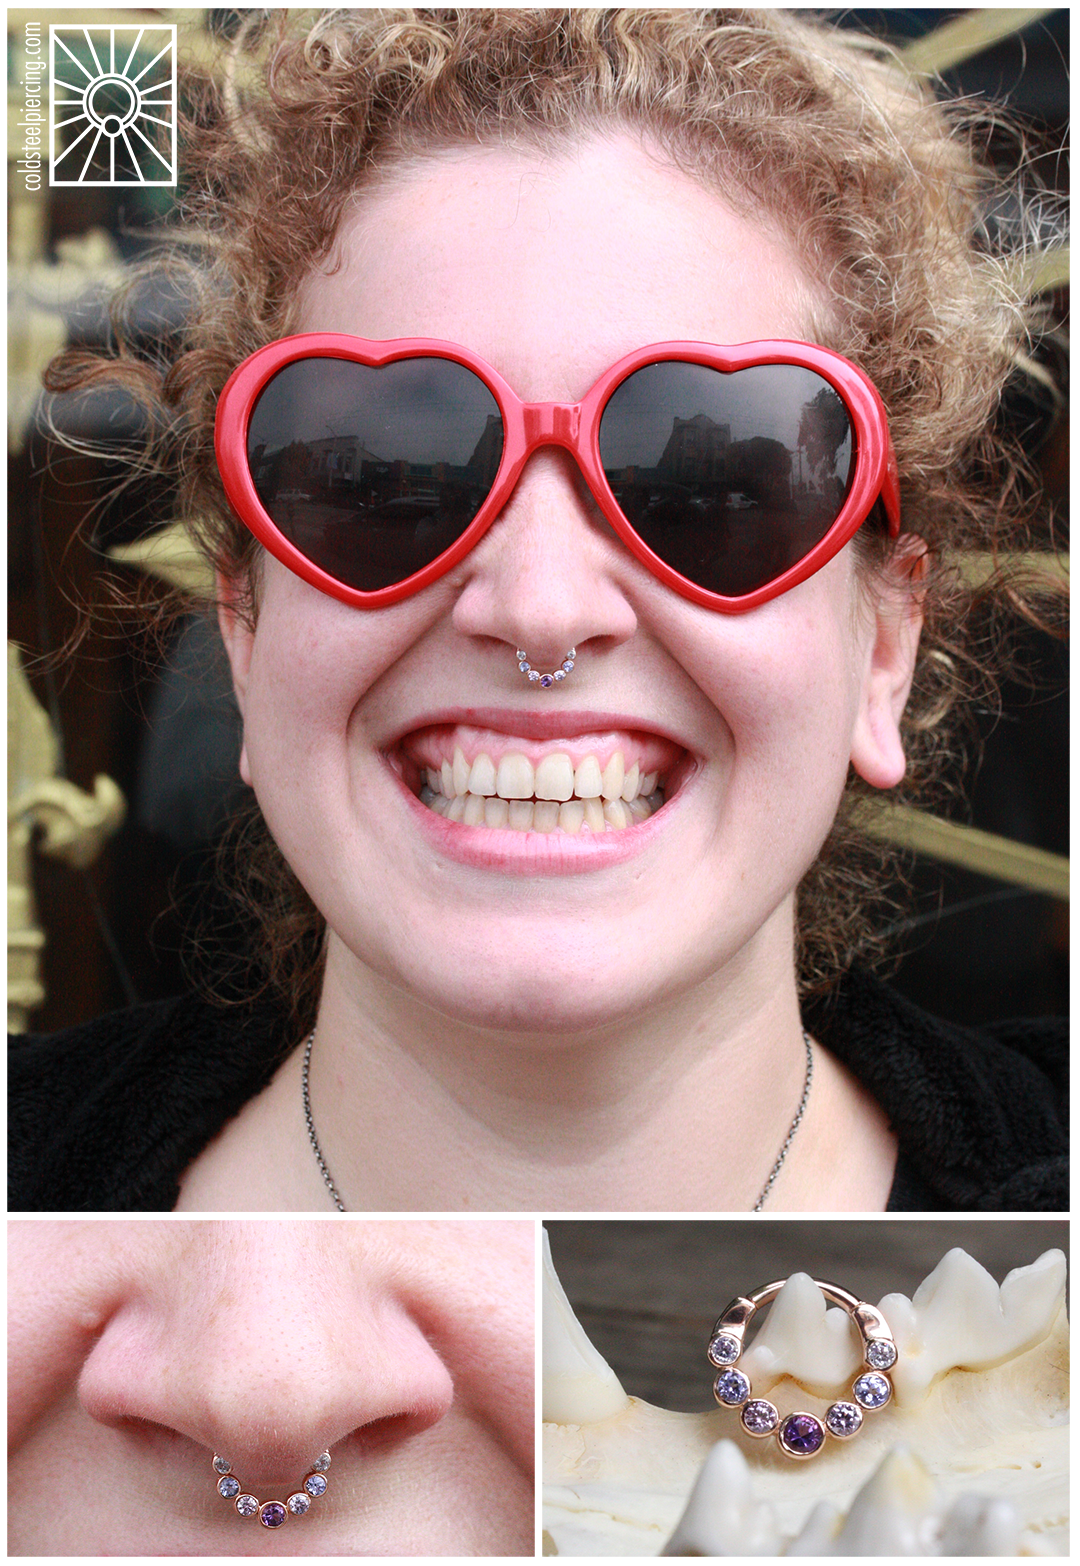 """We did not pierce this lovely lady's septum, but we were definitely happy to help her fancy it up with this drop dead gorgeous Rose Gold """"Lynx"""" hinged ring featuring genuine Amethyst, Tanzanite and Lavender cz's from Body Vision Los Angeles! We love helping make dream jewelry connections!"""